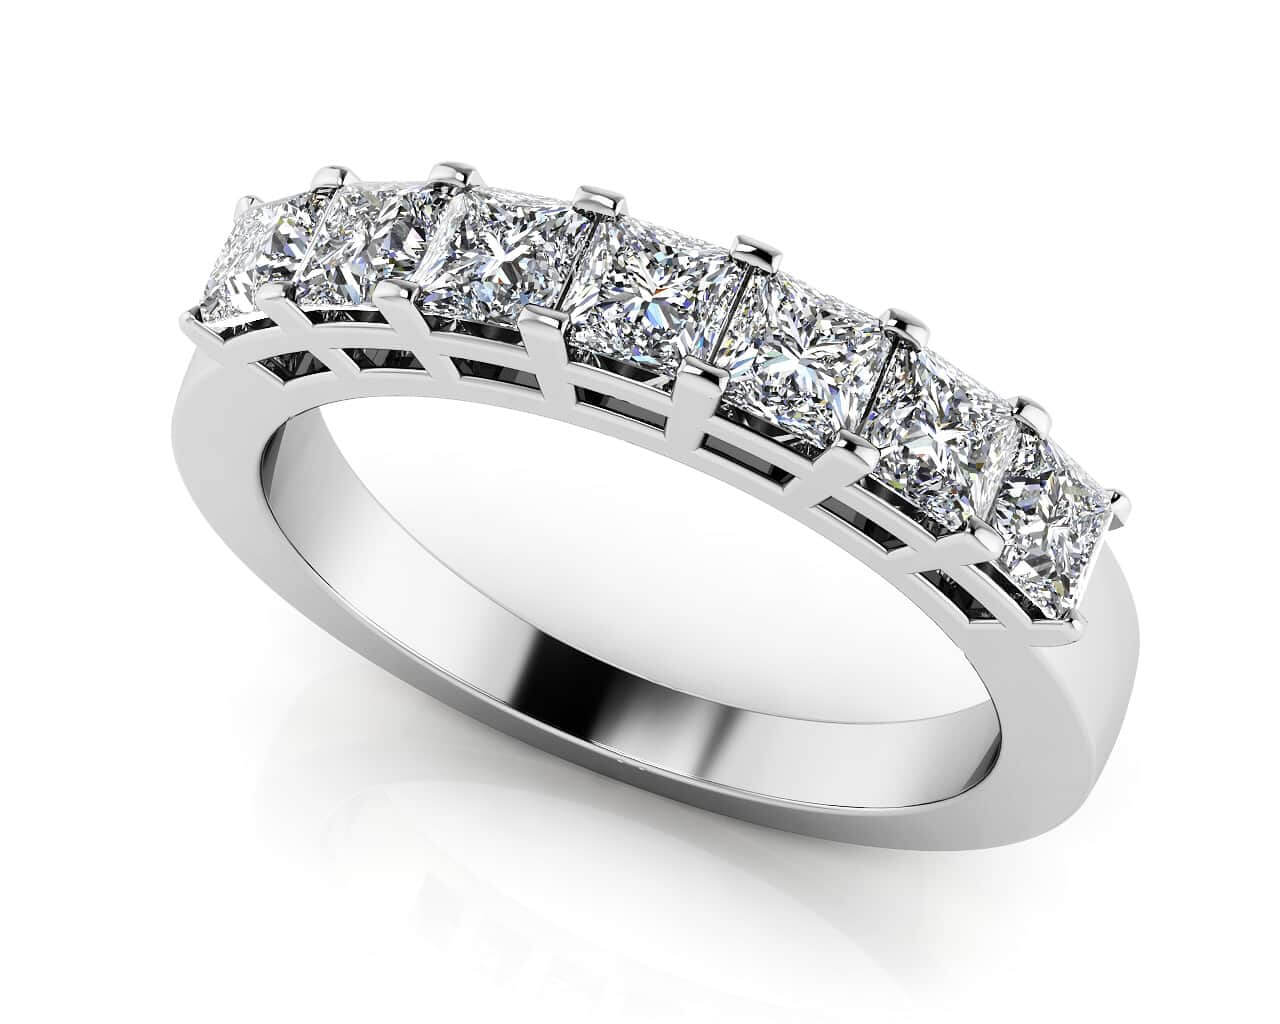 partner for to things rings hover four consider sgjcjxv diamond when anniversary your jewellery zoom buying